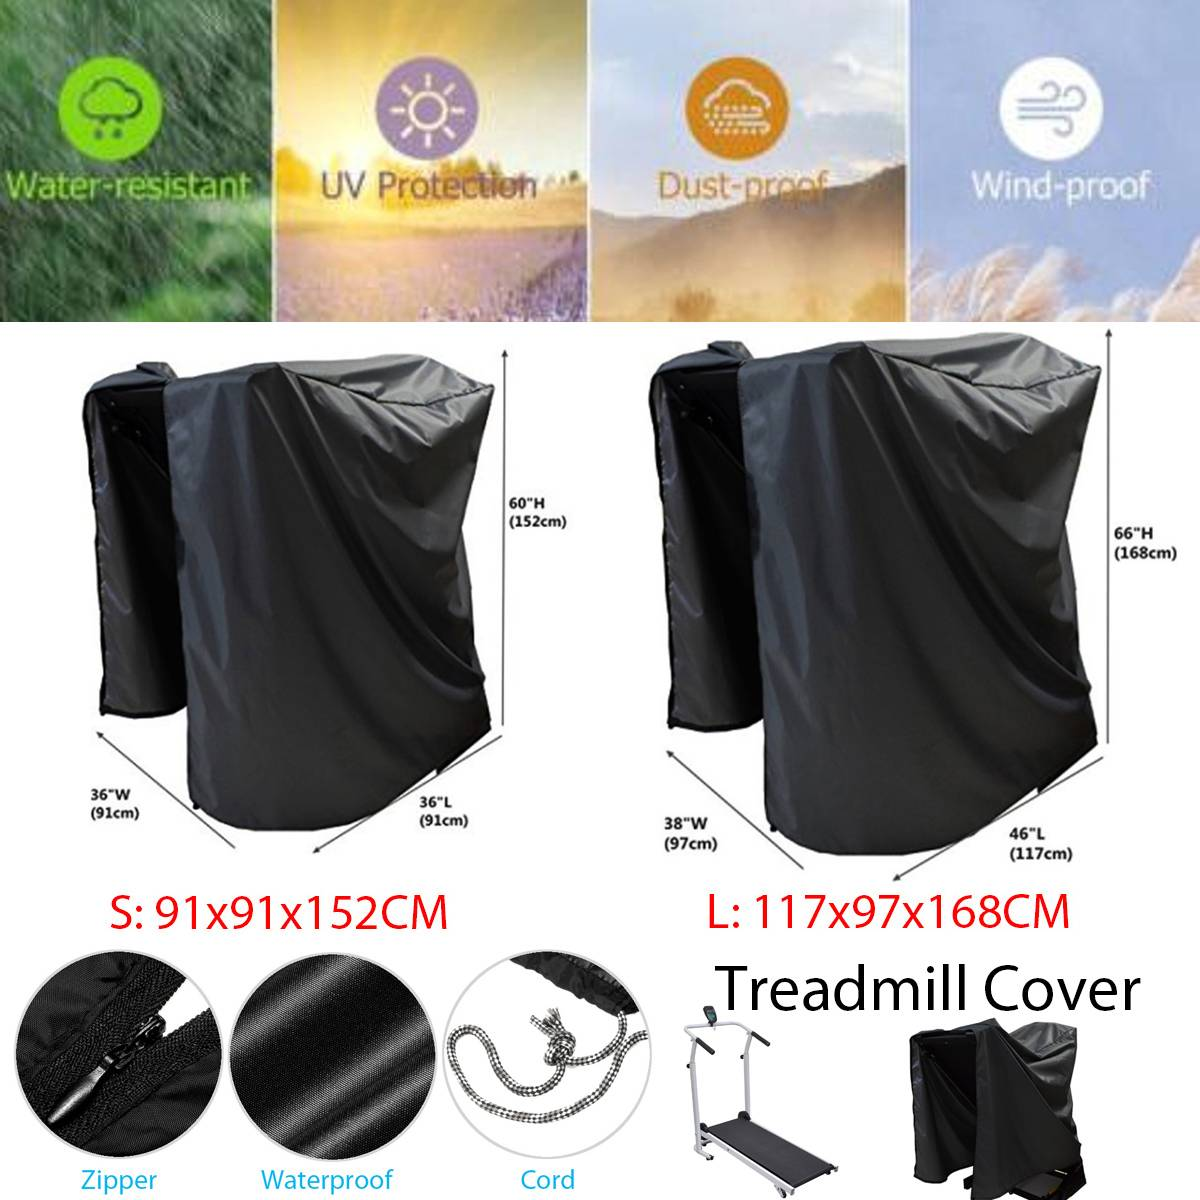 2 Size Indoor Outdoor Waterproof Treadmill Cover Running Jogging Machine Dust Proof Shelter Protection Treadmill Dust Covers